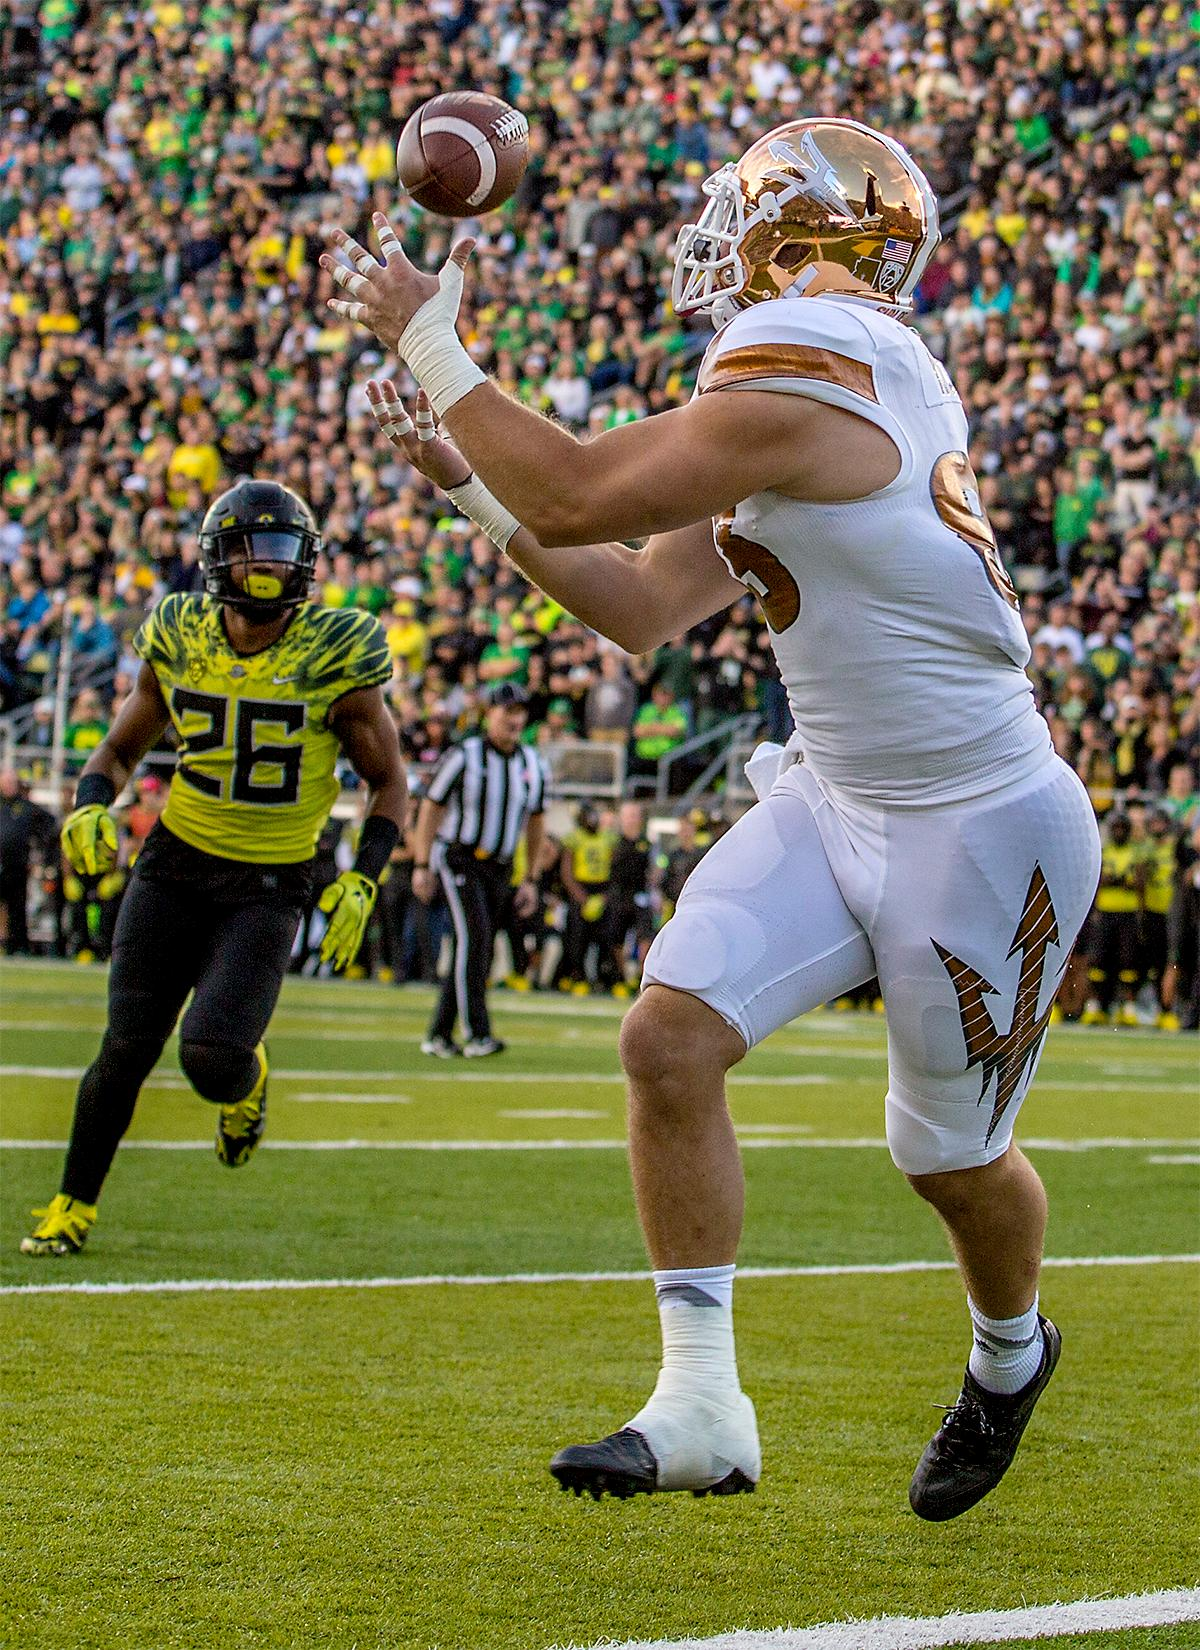 The Sun Devils' Kody Kohl (#83) makes a catch as he runs into the end zone to score a touchdown. The Oregon Ducks broke their losing streak by defeating the ASU Sun Devils on Saturday 54-35. Photo by August Frank, Oregon News Lab